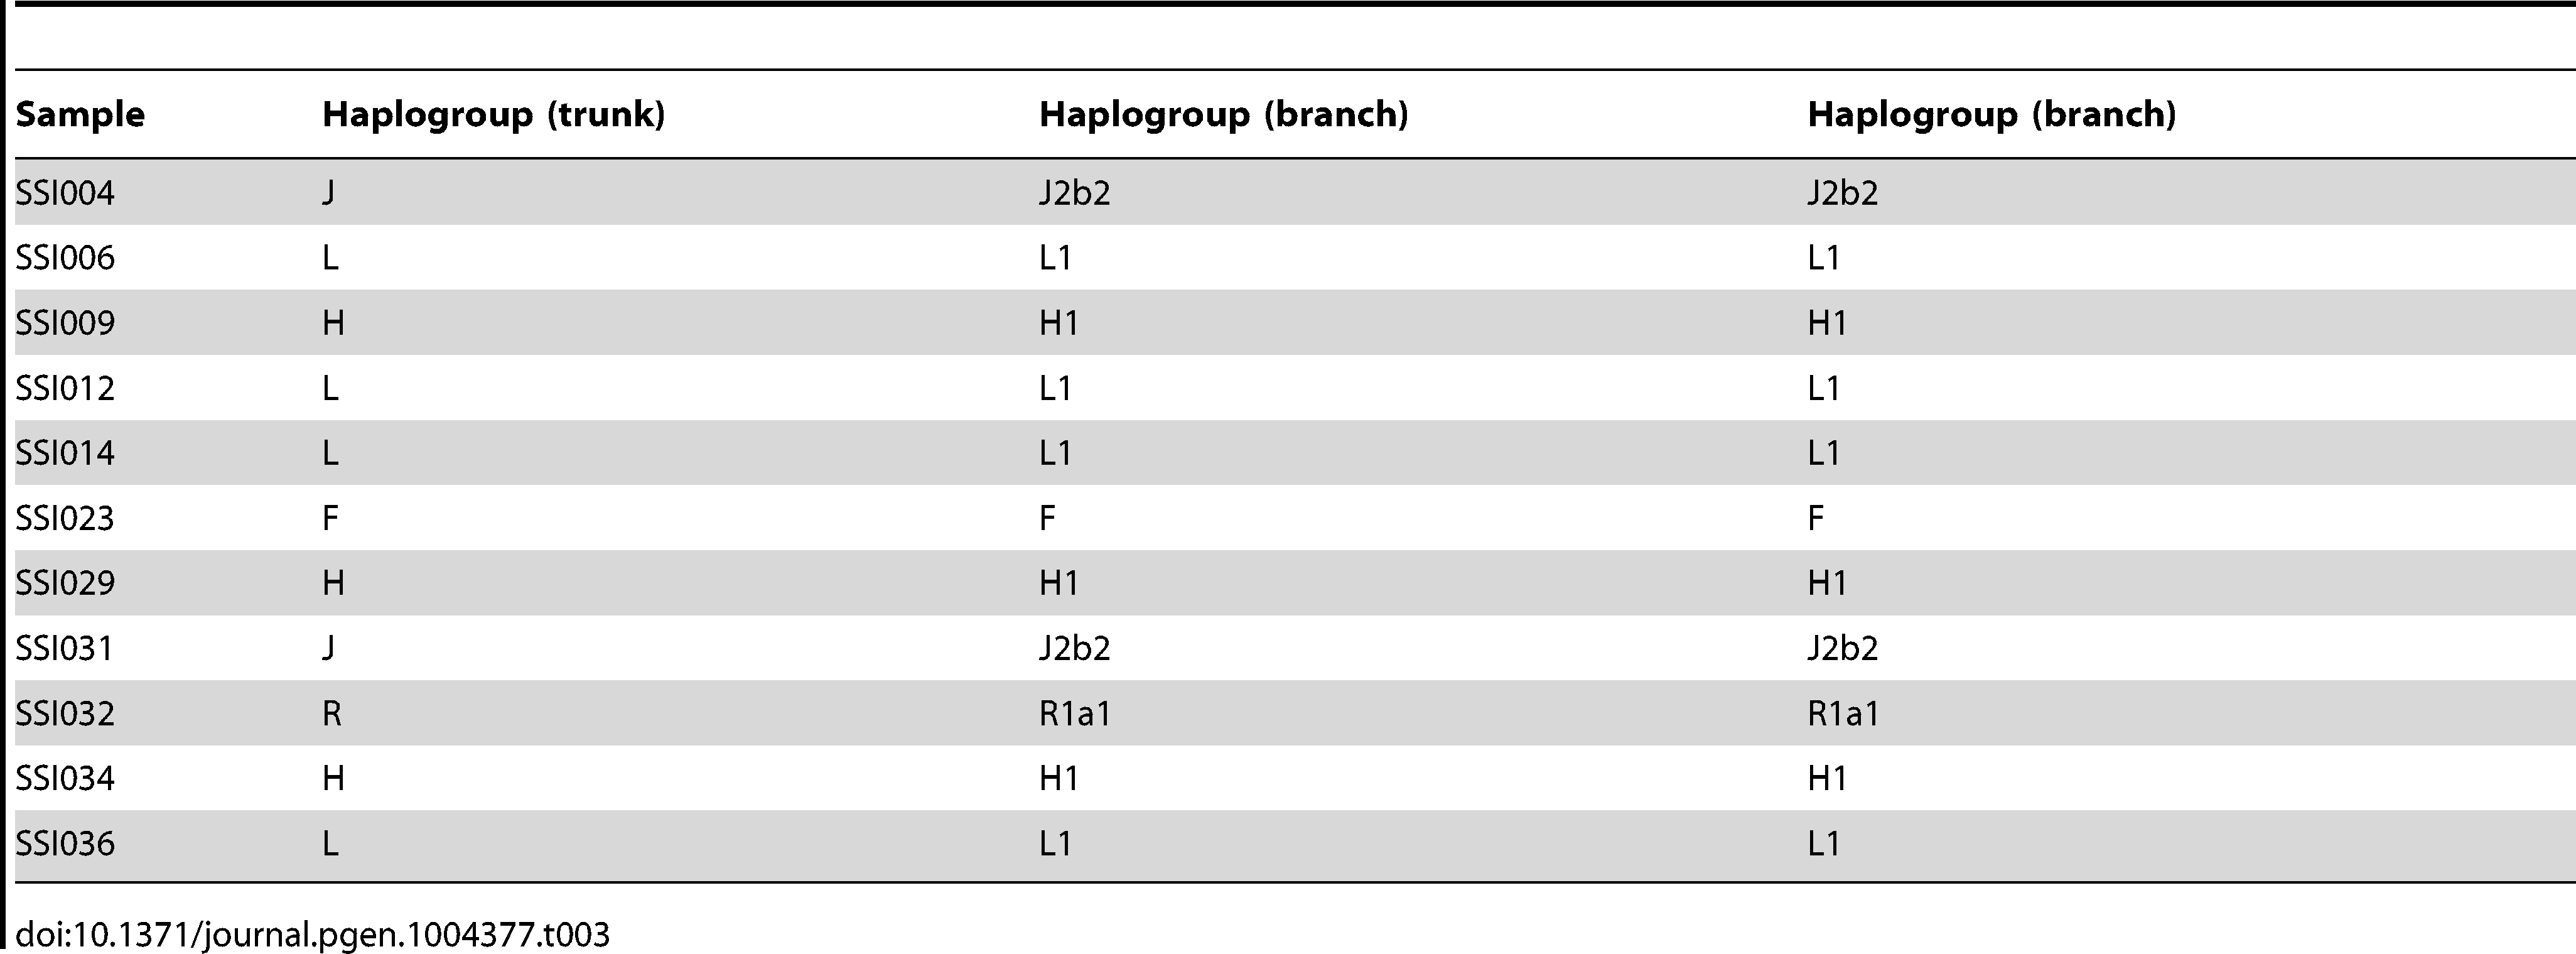 Chromosome Y haplogroup assignment for the 11 SSIP male samples.